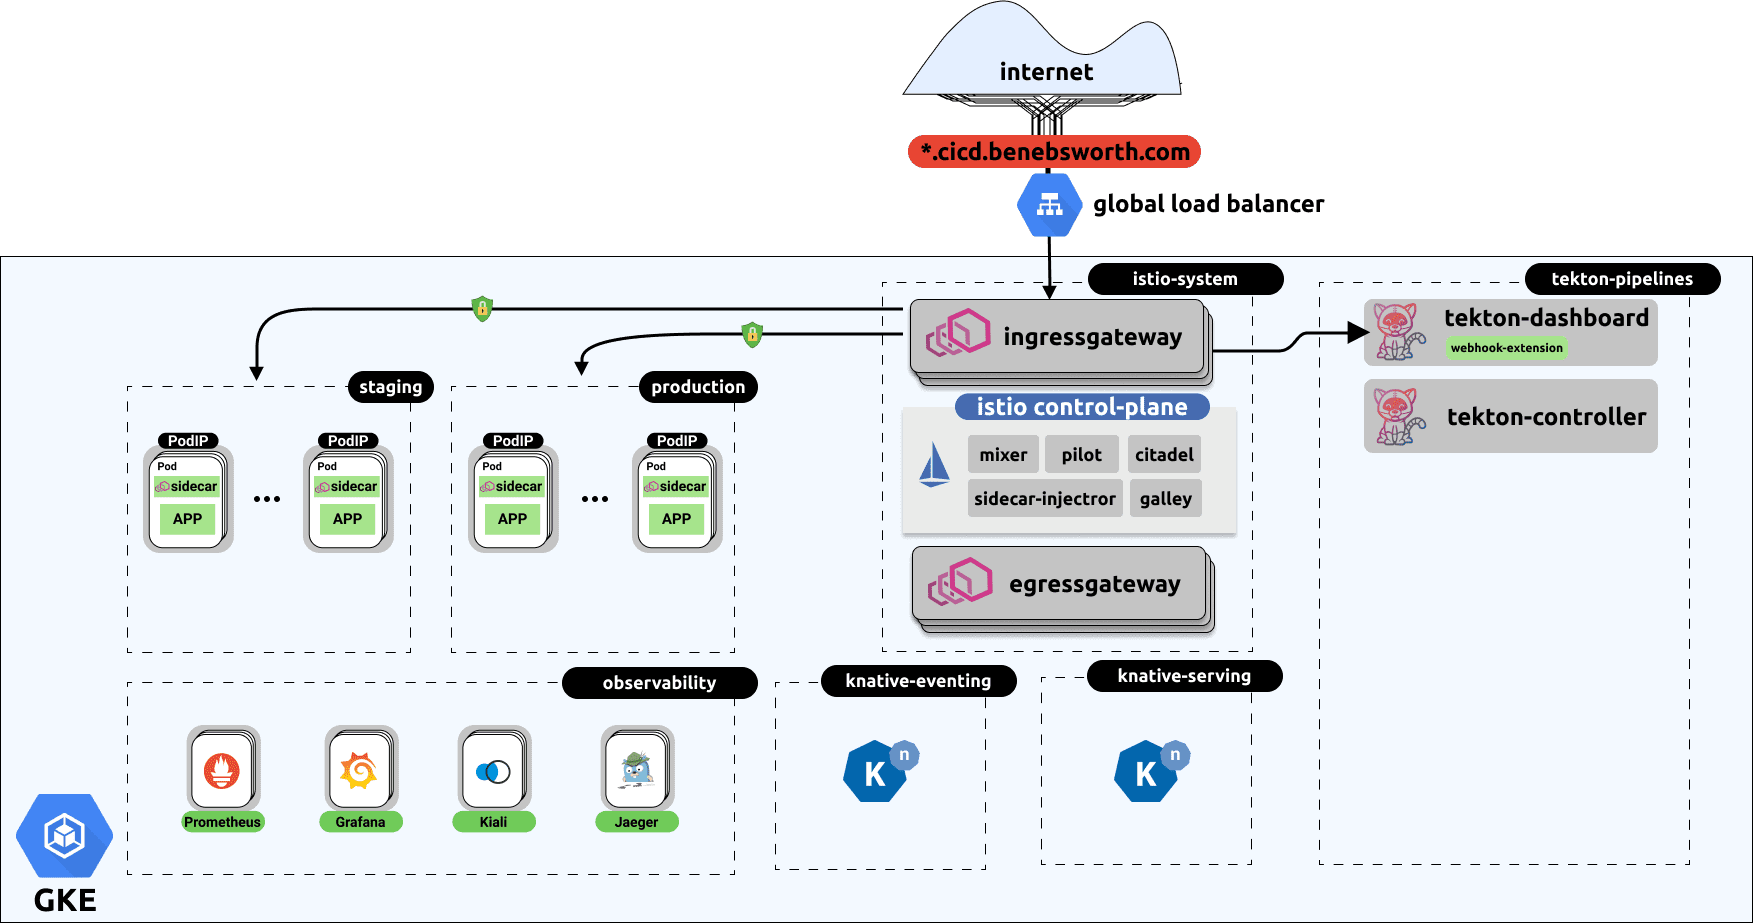 Kubernetes-centric Continuous Delivery